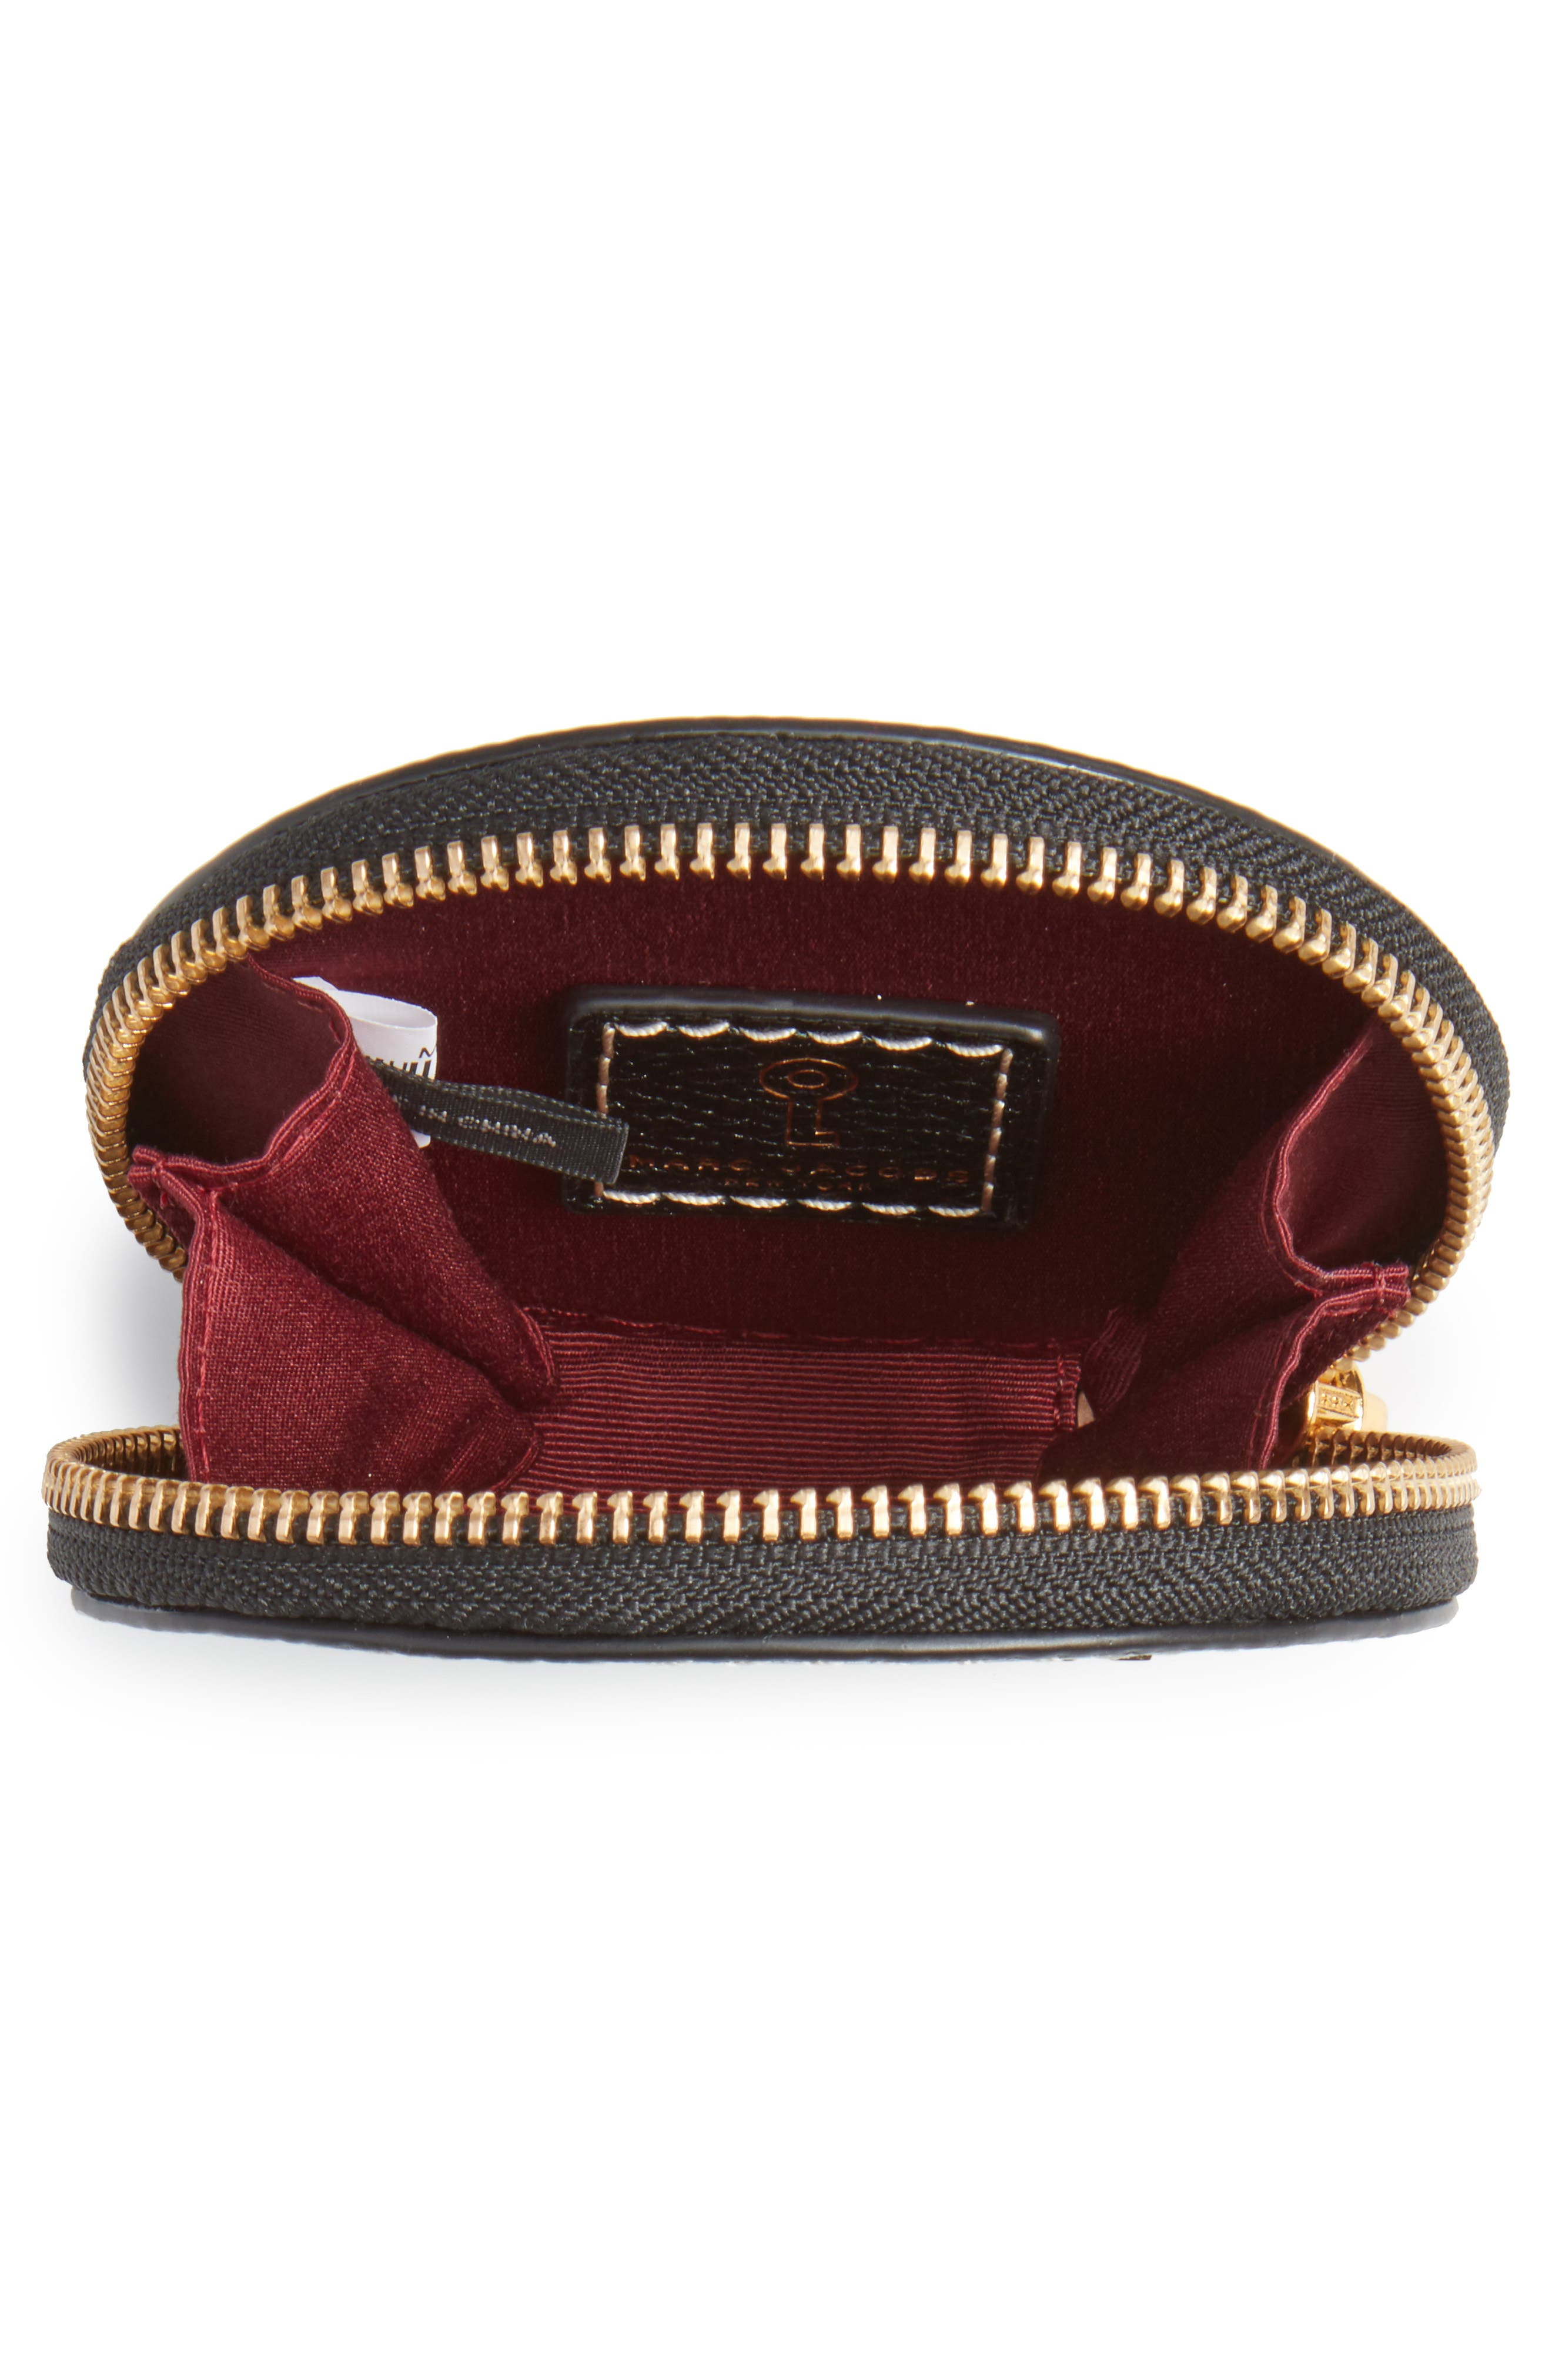 The Grind Leather Coin Pouch,                             Alternate thumbnail 2, color,                             001